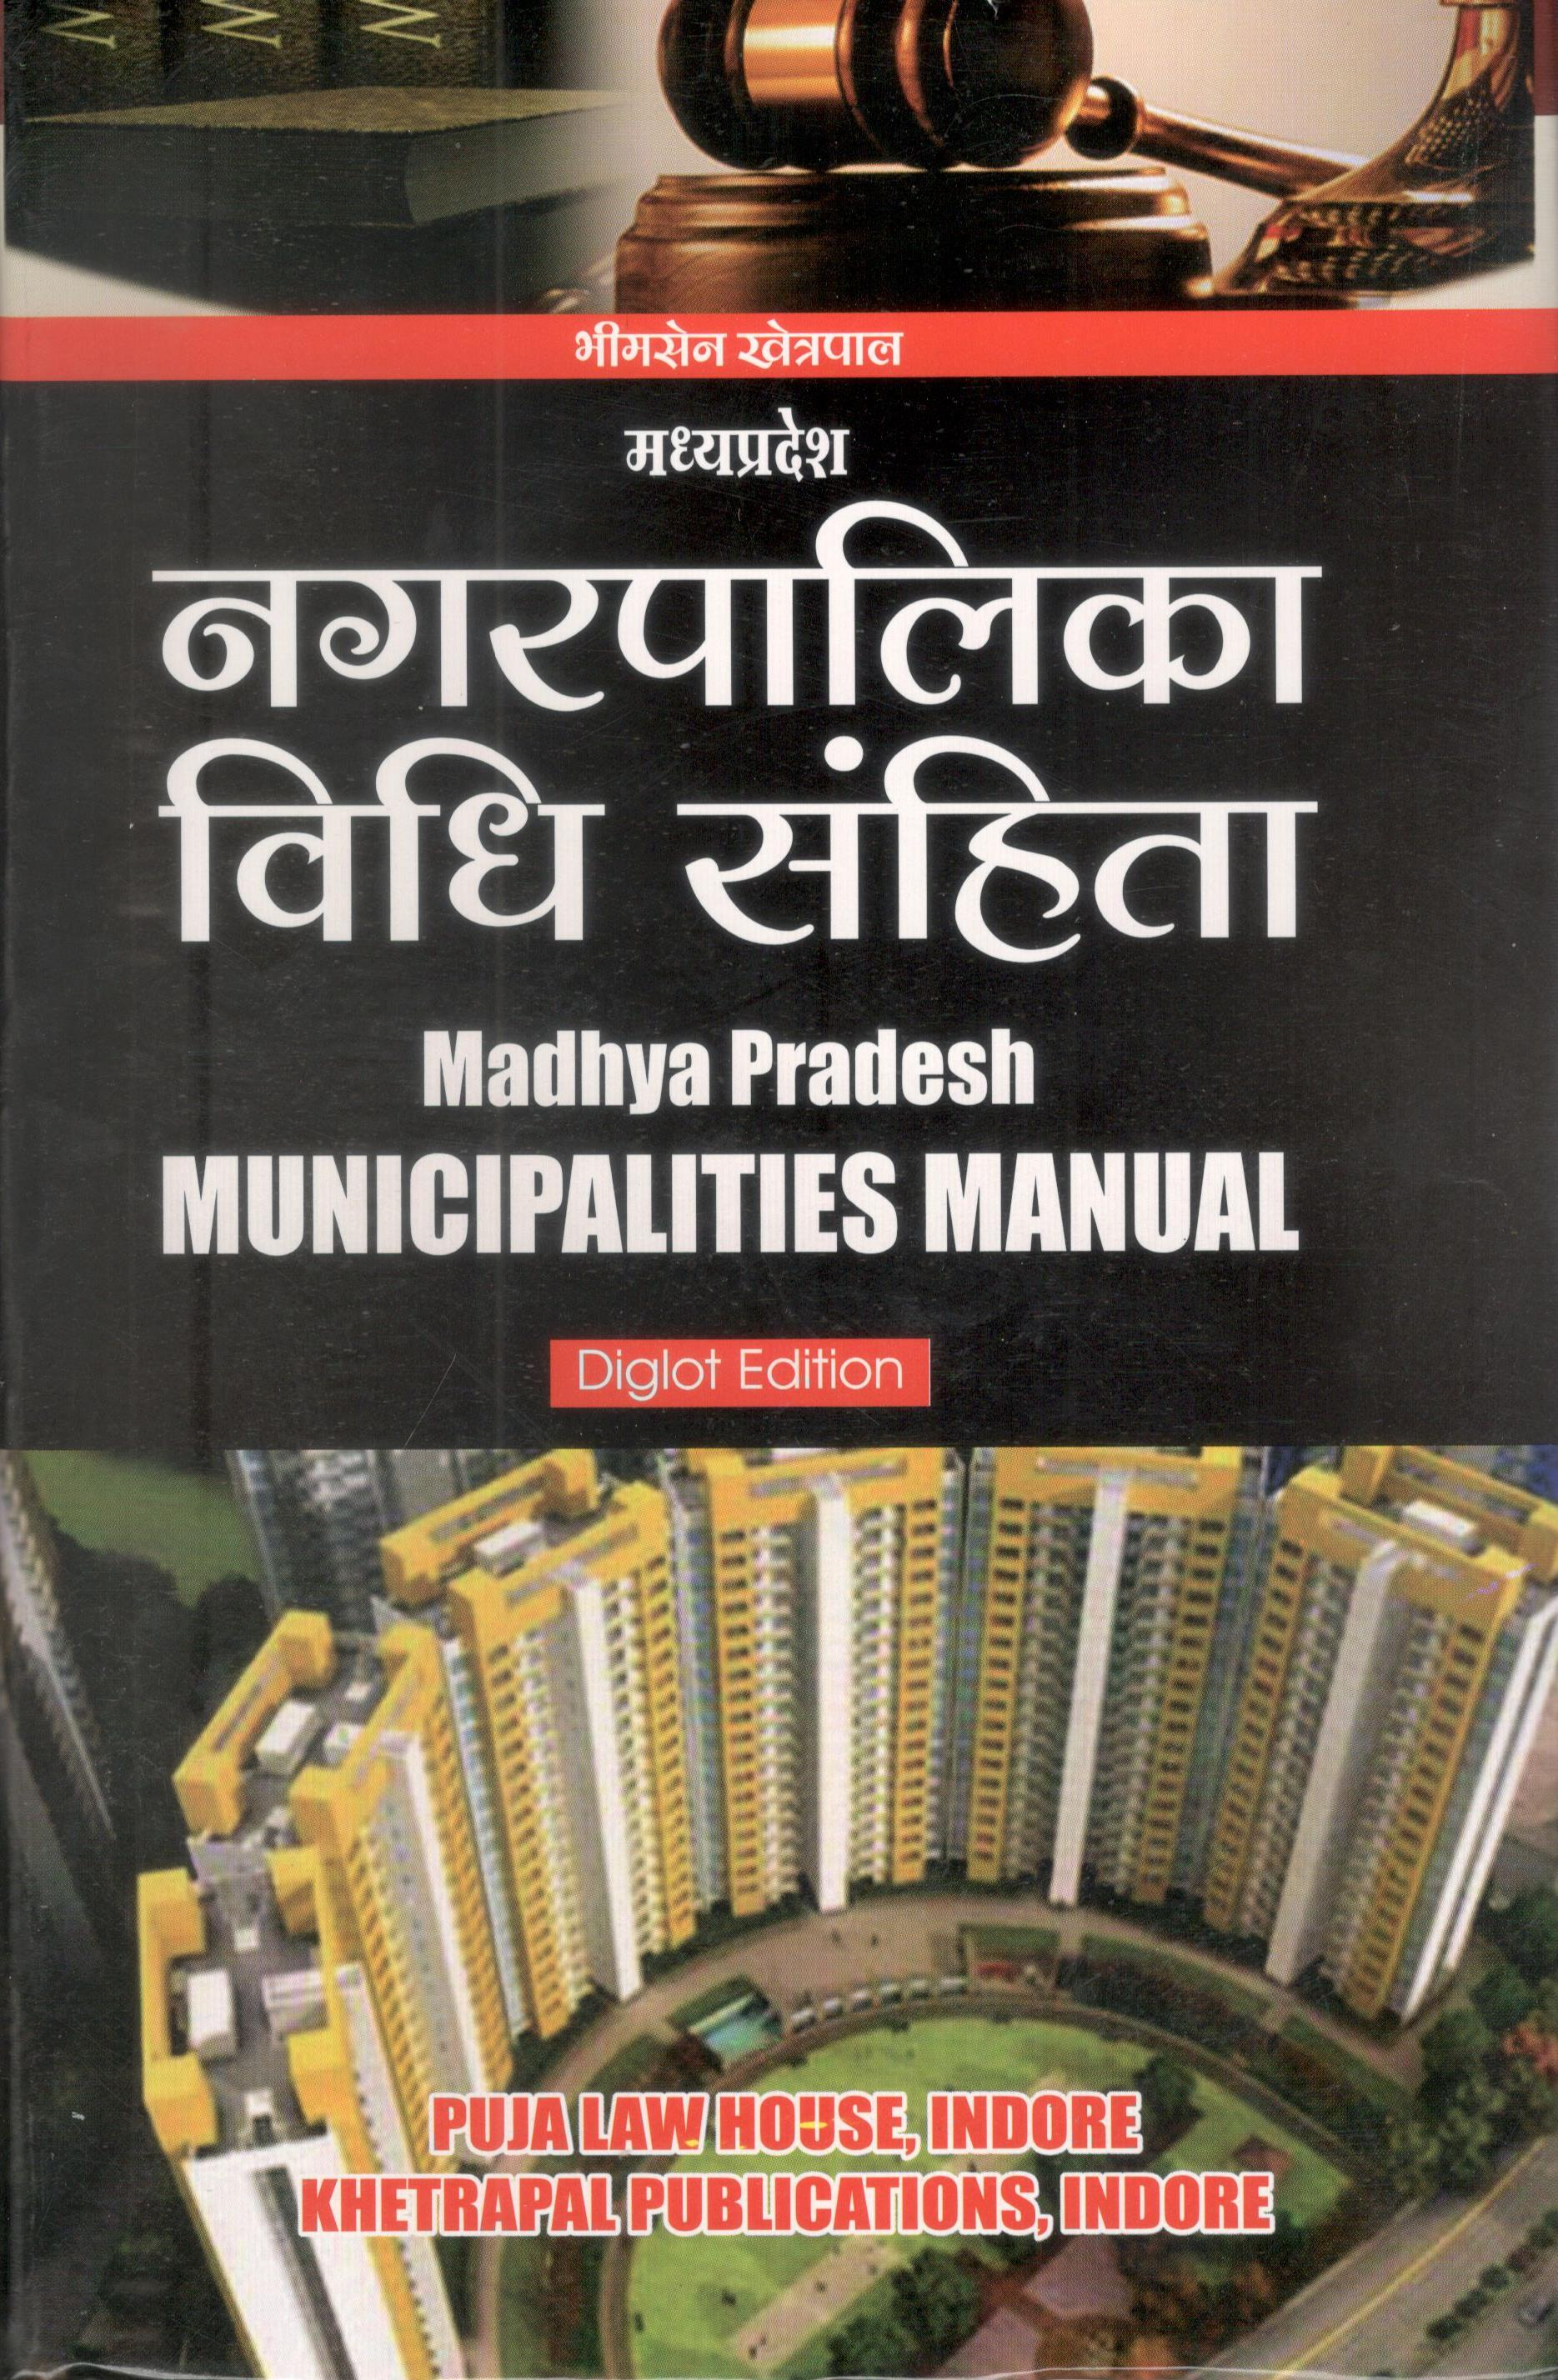 भीमसेन खेत�रपाल - मध�य प�रदेश नगर पालिका विधि संहिता / M.P. Muncipalities Manual